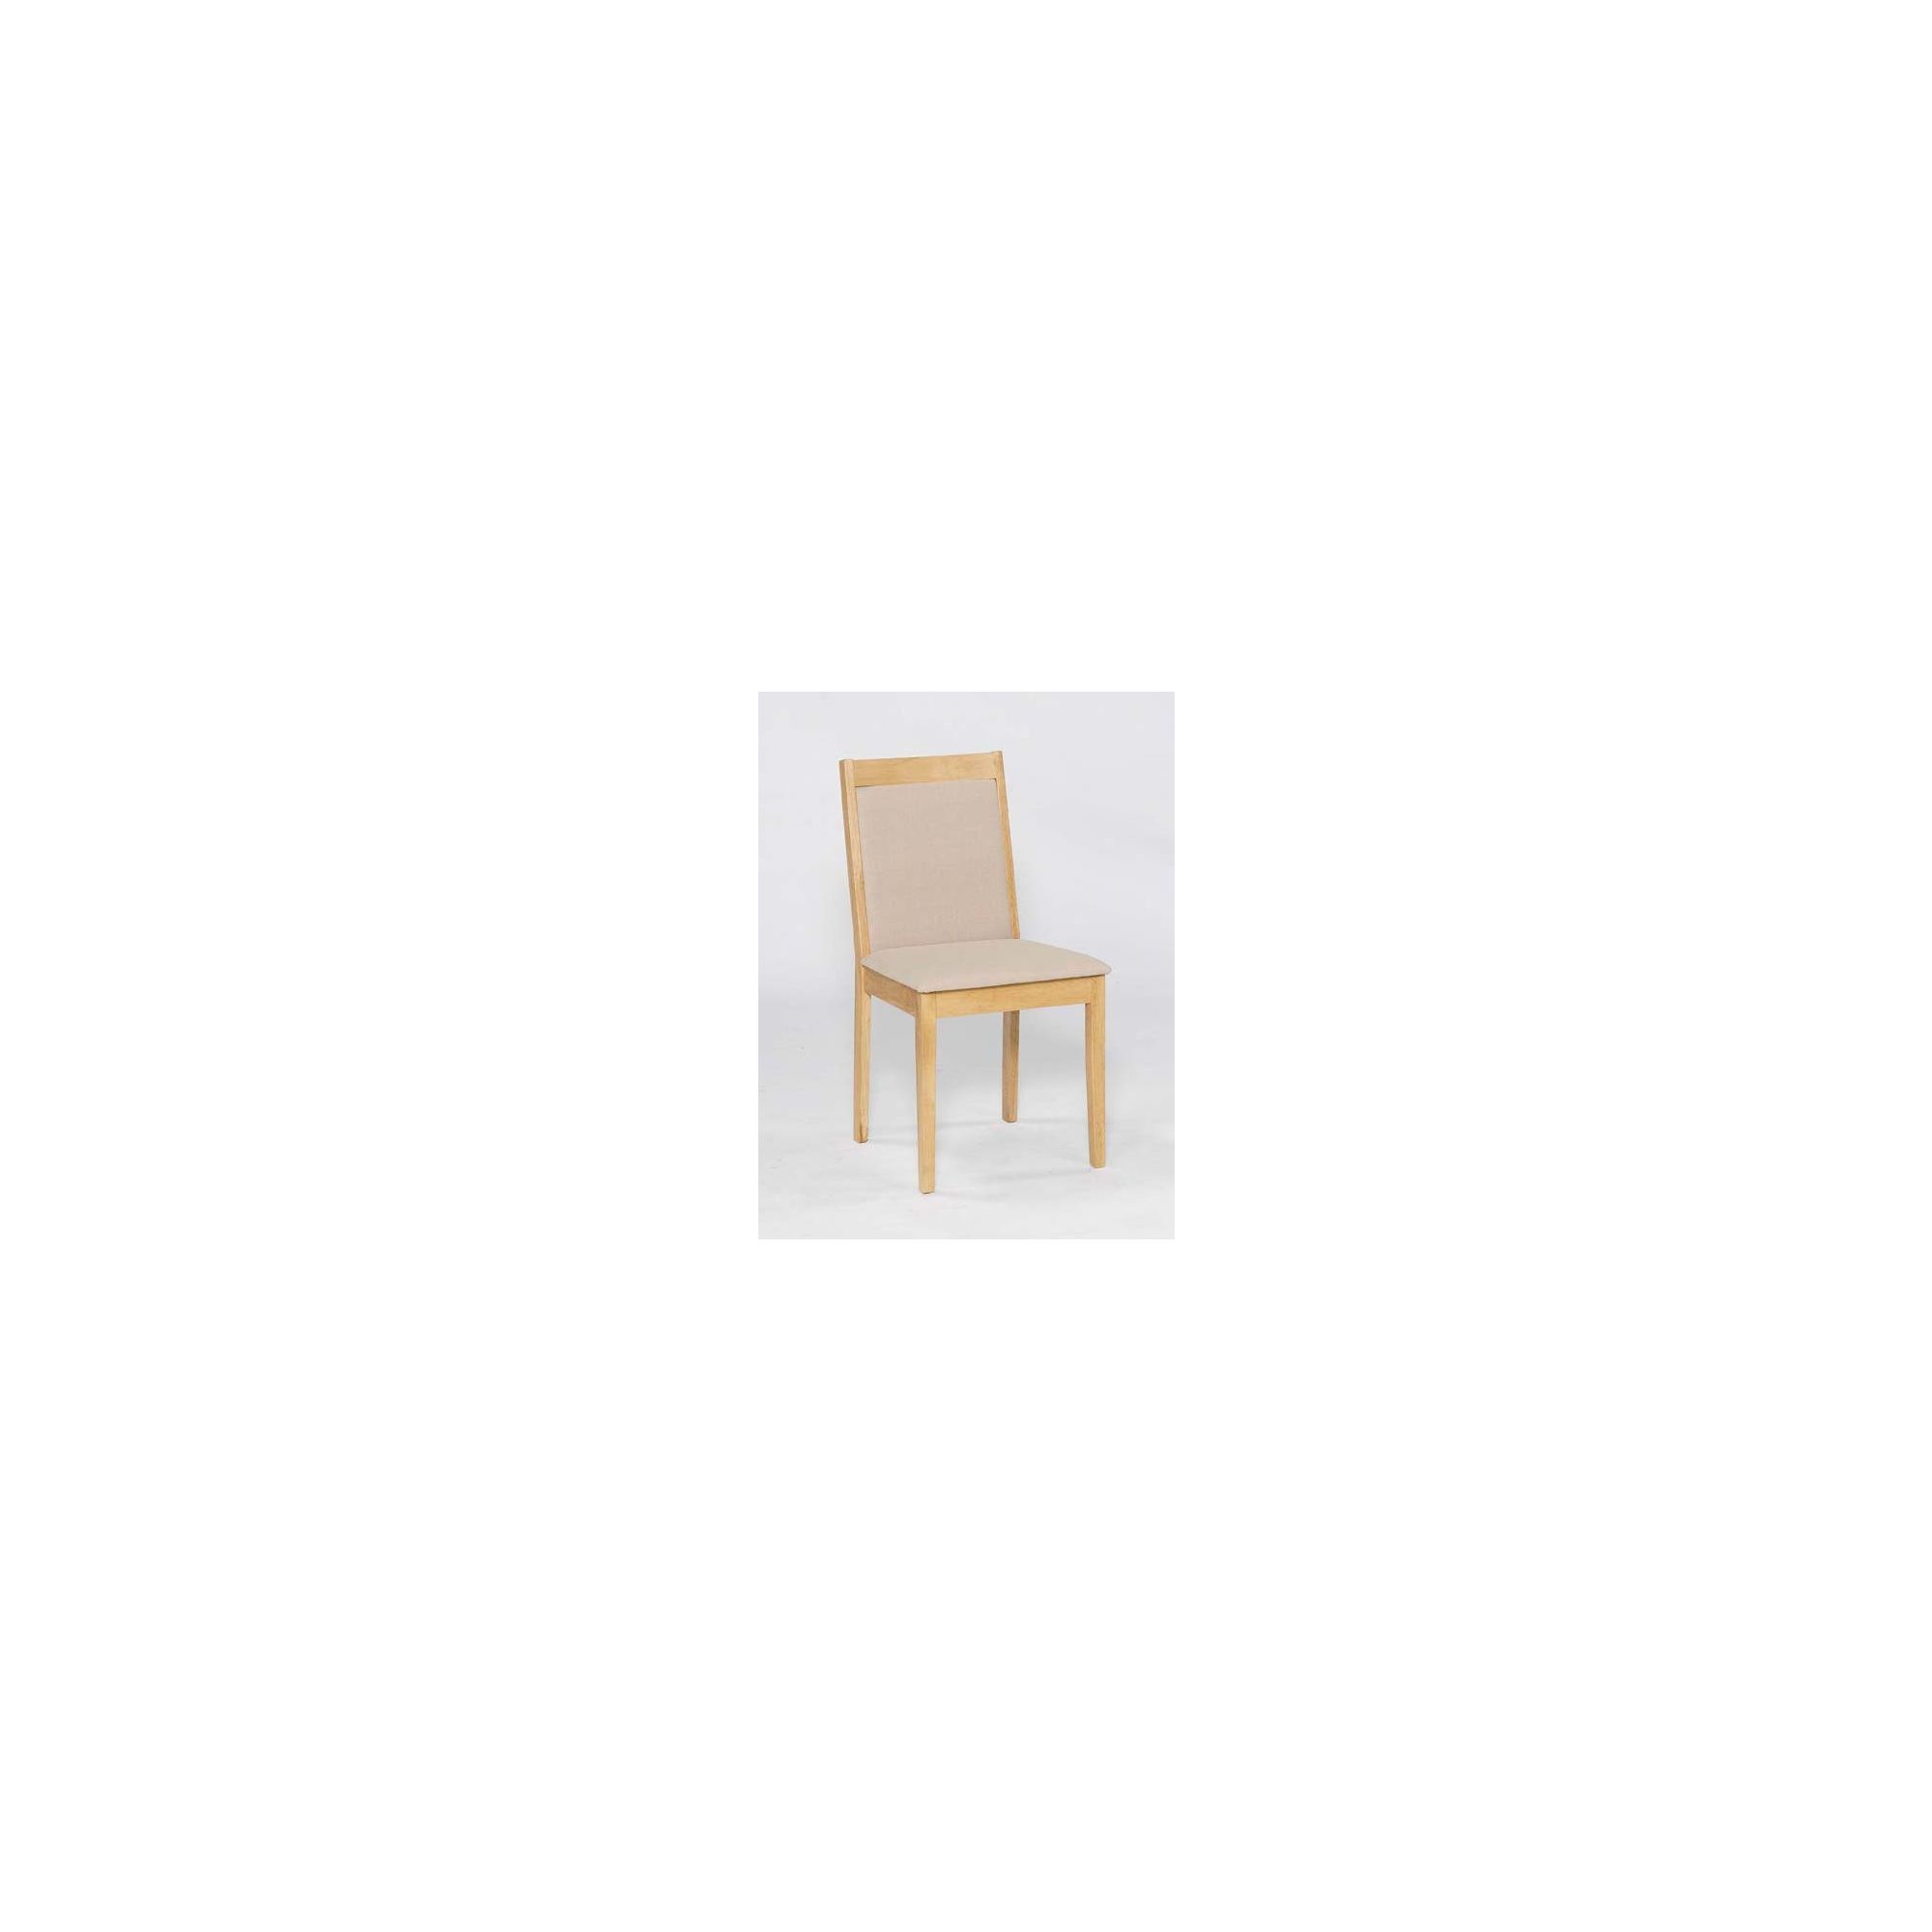 Home Zone Greenwich Dining Chair in Stucco Beige (set of 2)